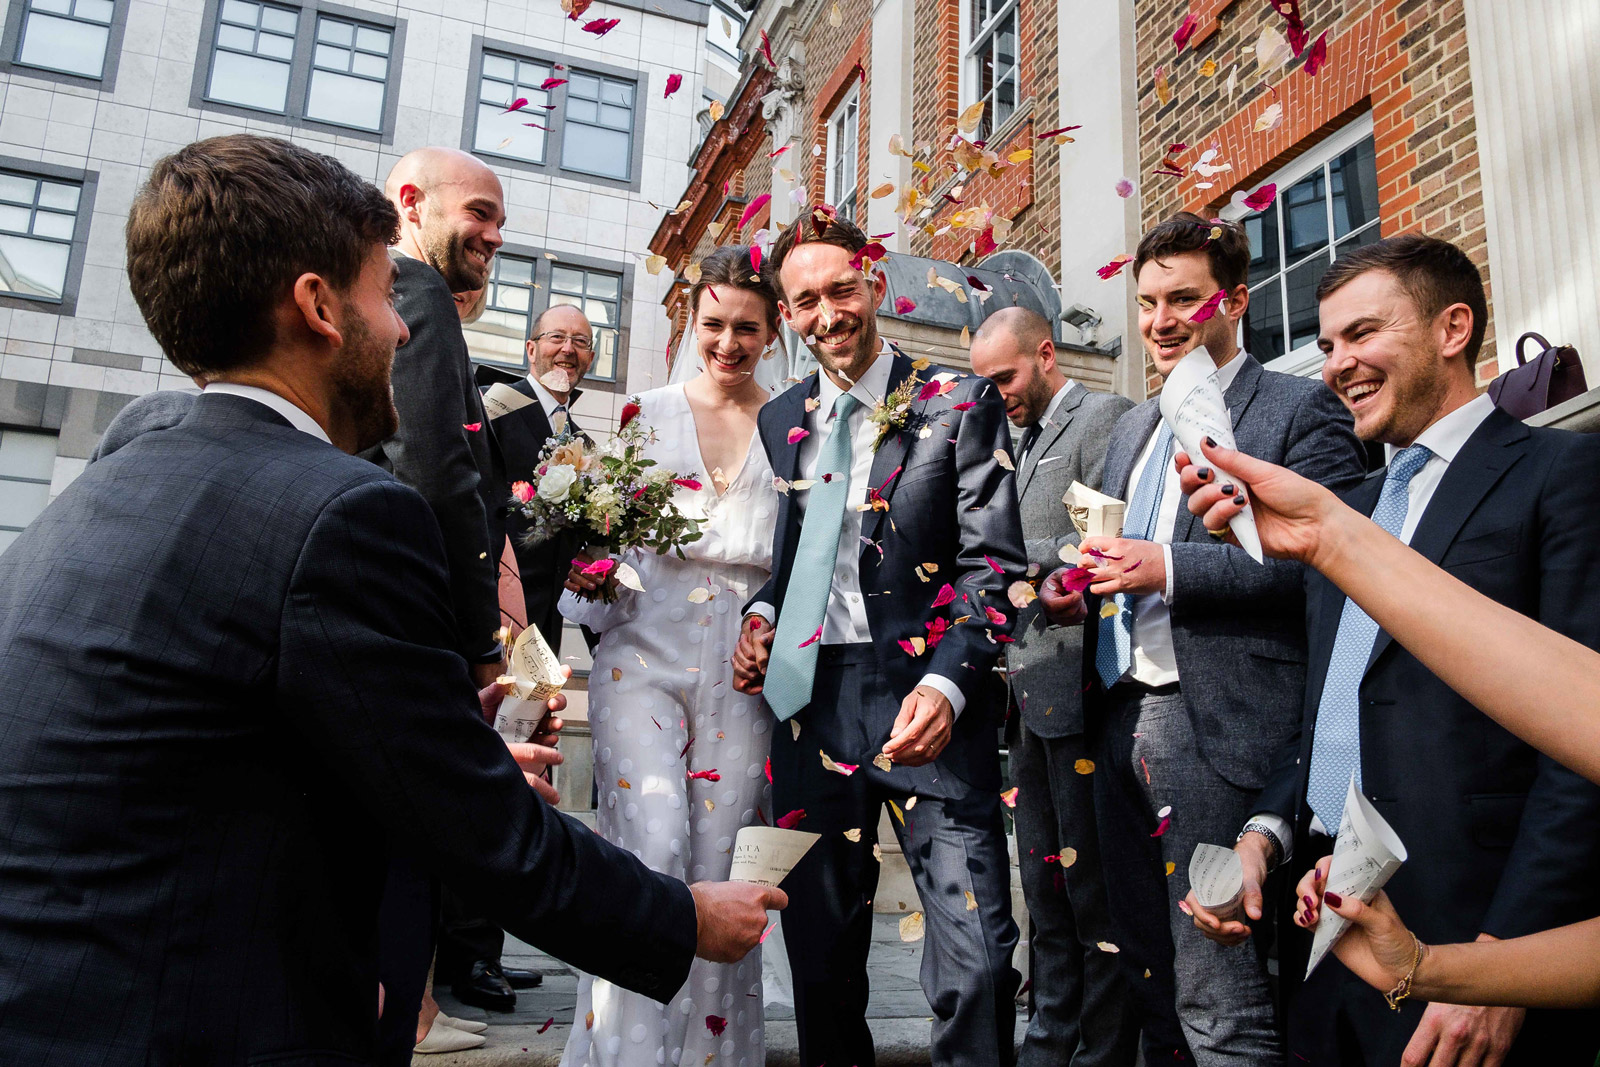 Kindred-hall-wedding-in-hammersmith-london